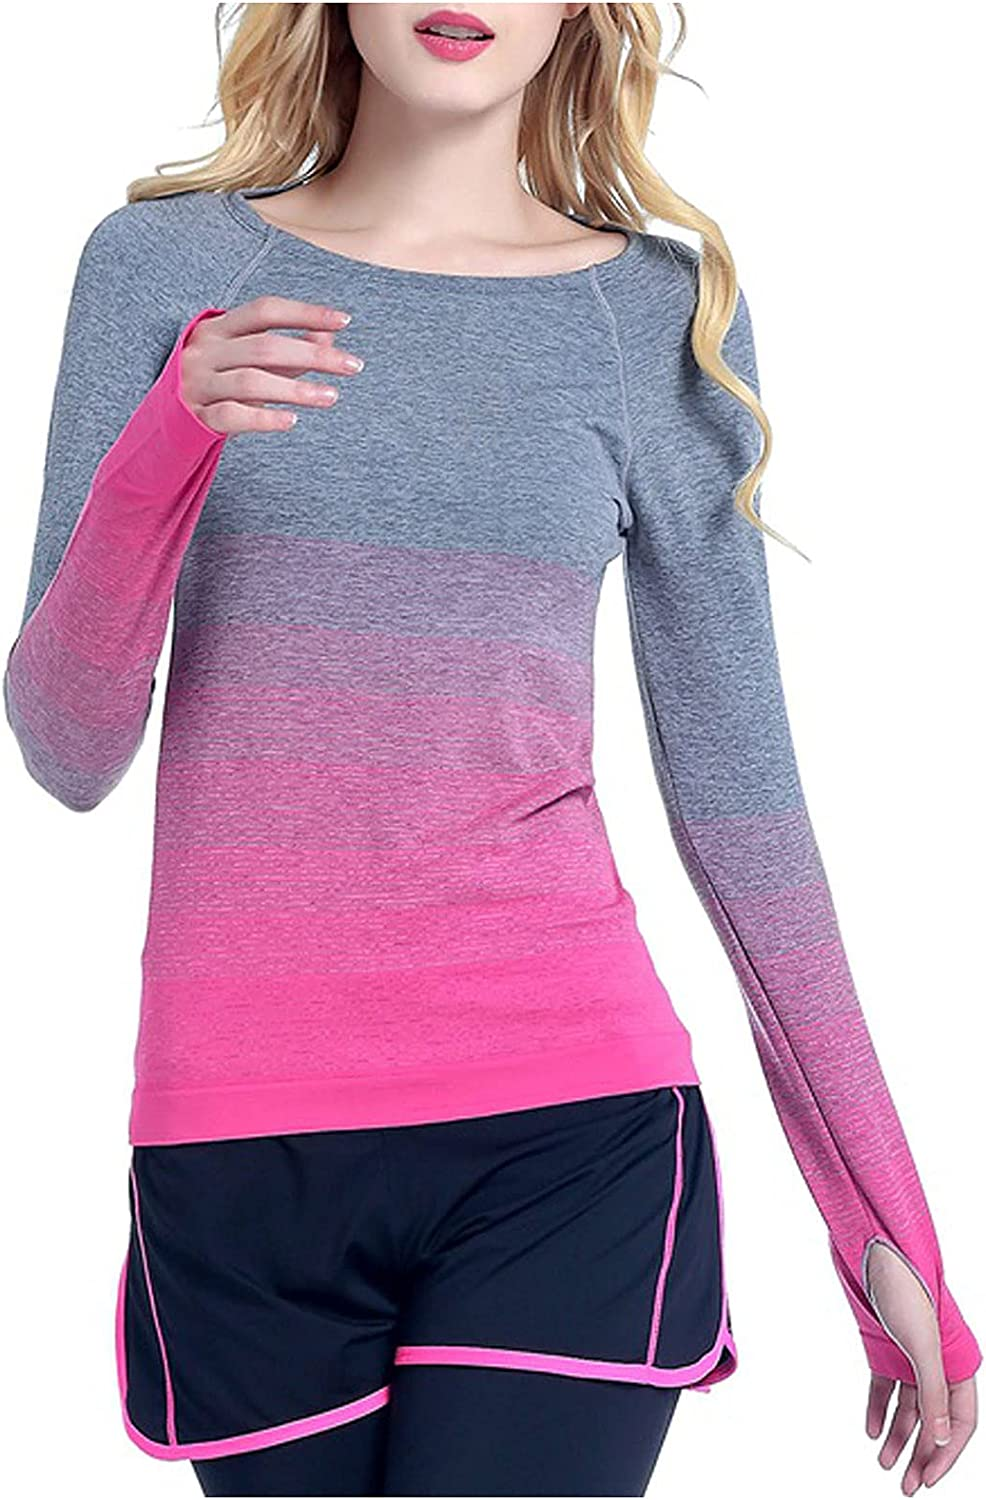 Women Gradient Print Sports Yoga Tops Crewneck Slim Comfy Long Sleeve Soft Fit Workout Pullover